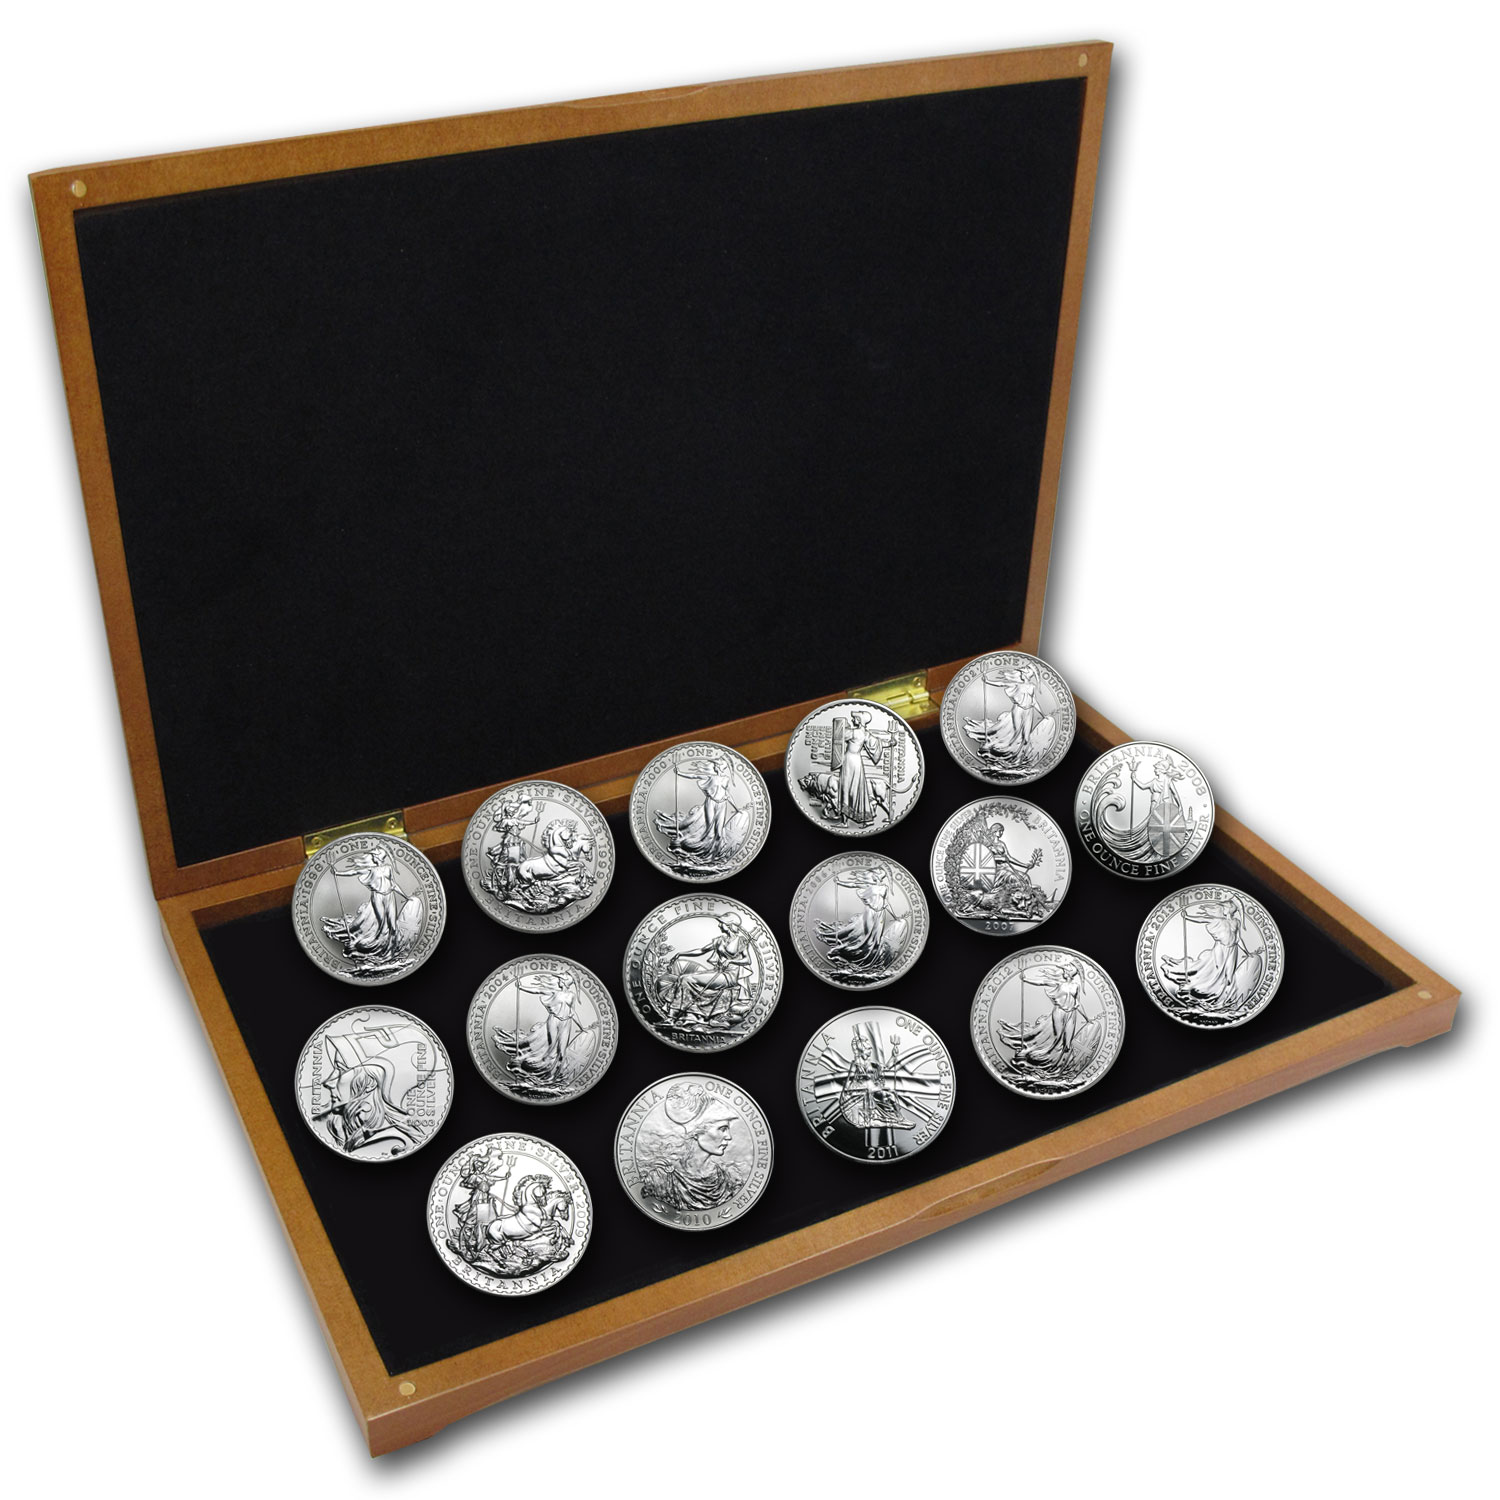 1998-2013 Silver Britannia Set In Wood Presentation Box(16 Coins)